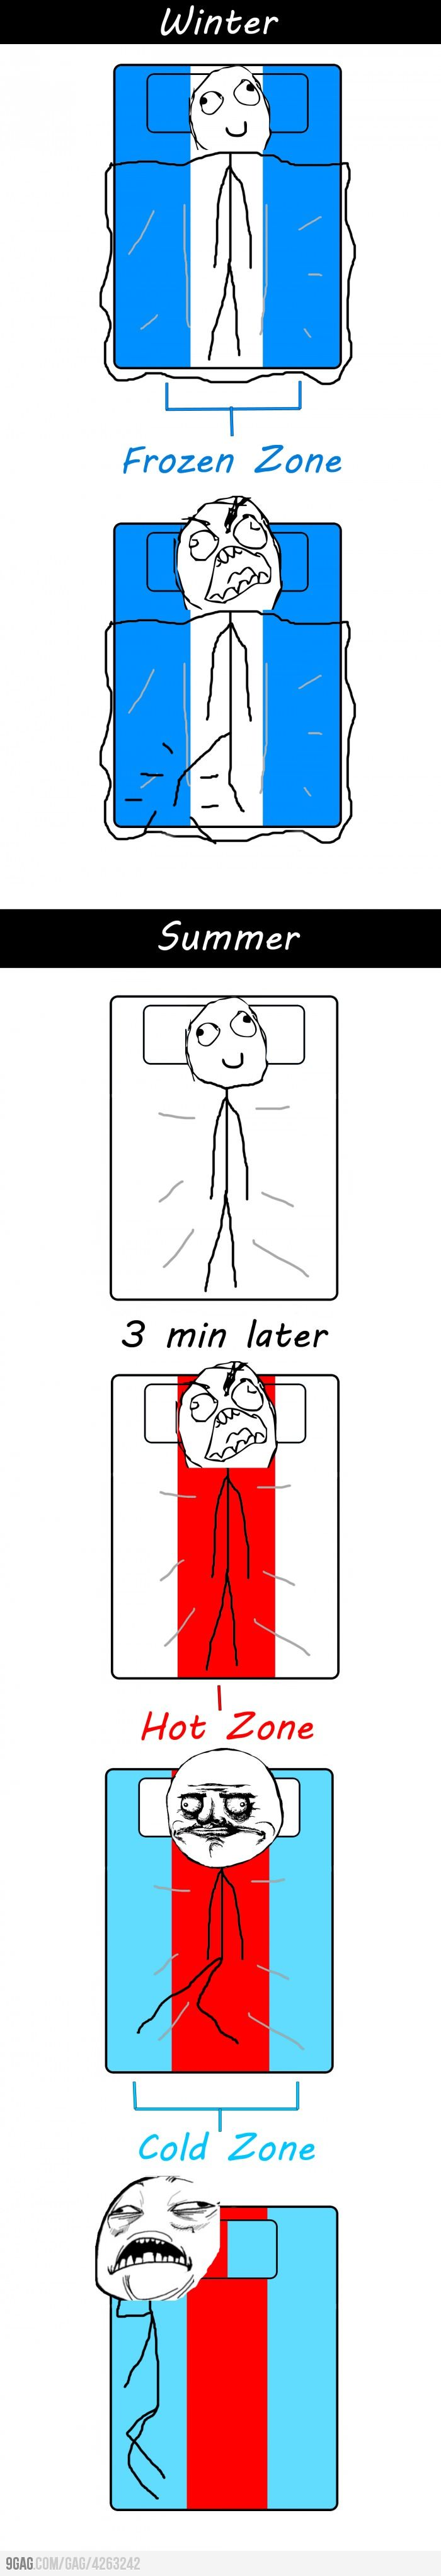 THIS IS SO ACCURATE!!!!!!!! But then a couple minutes later the cold side your laying becomes warm.